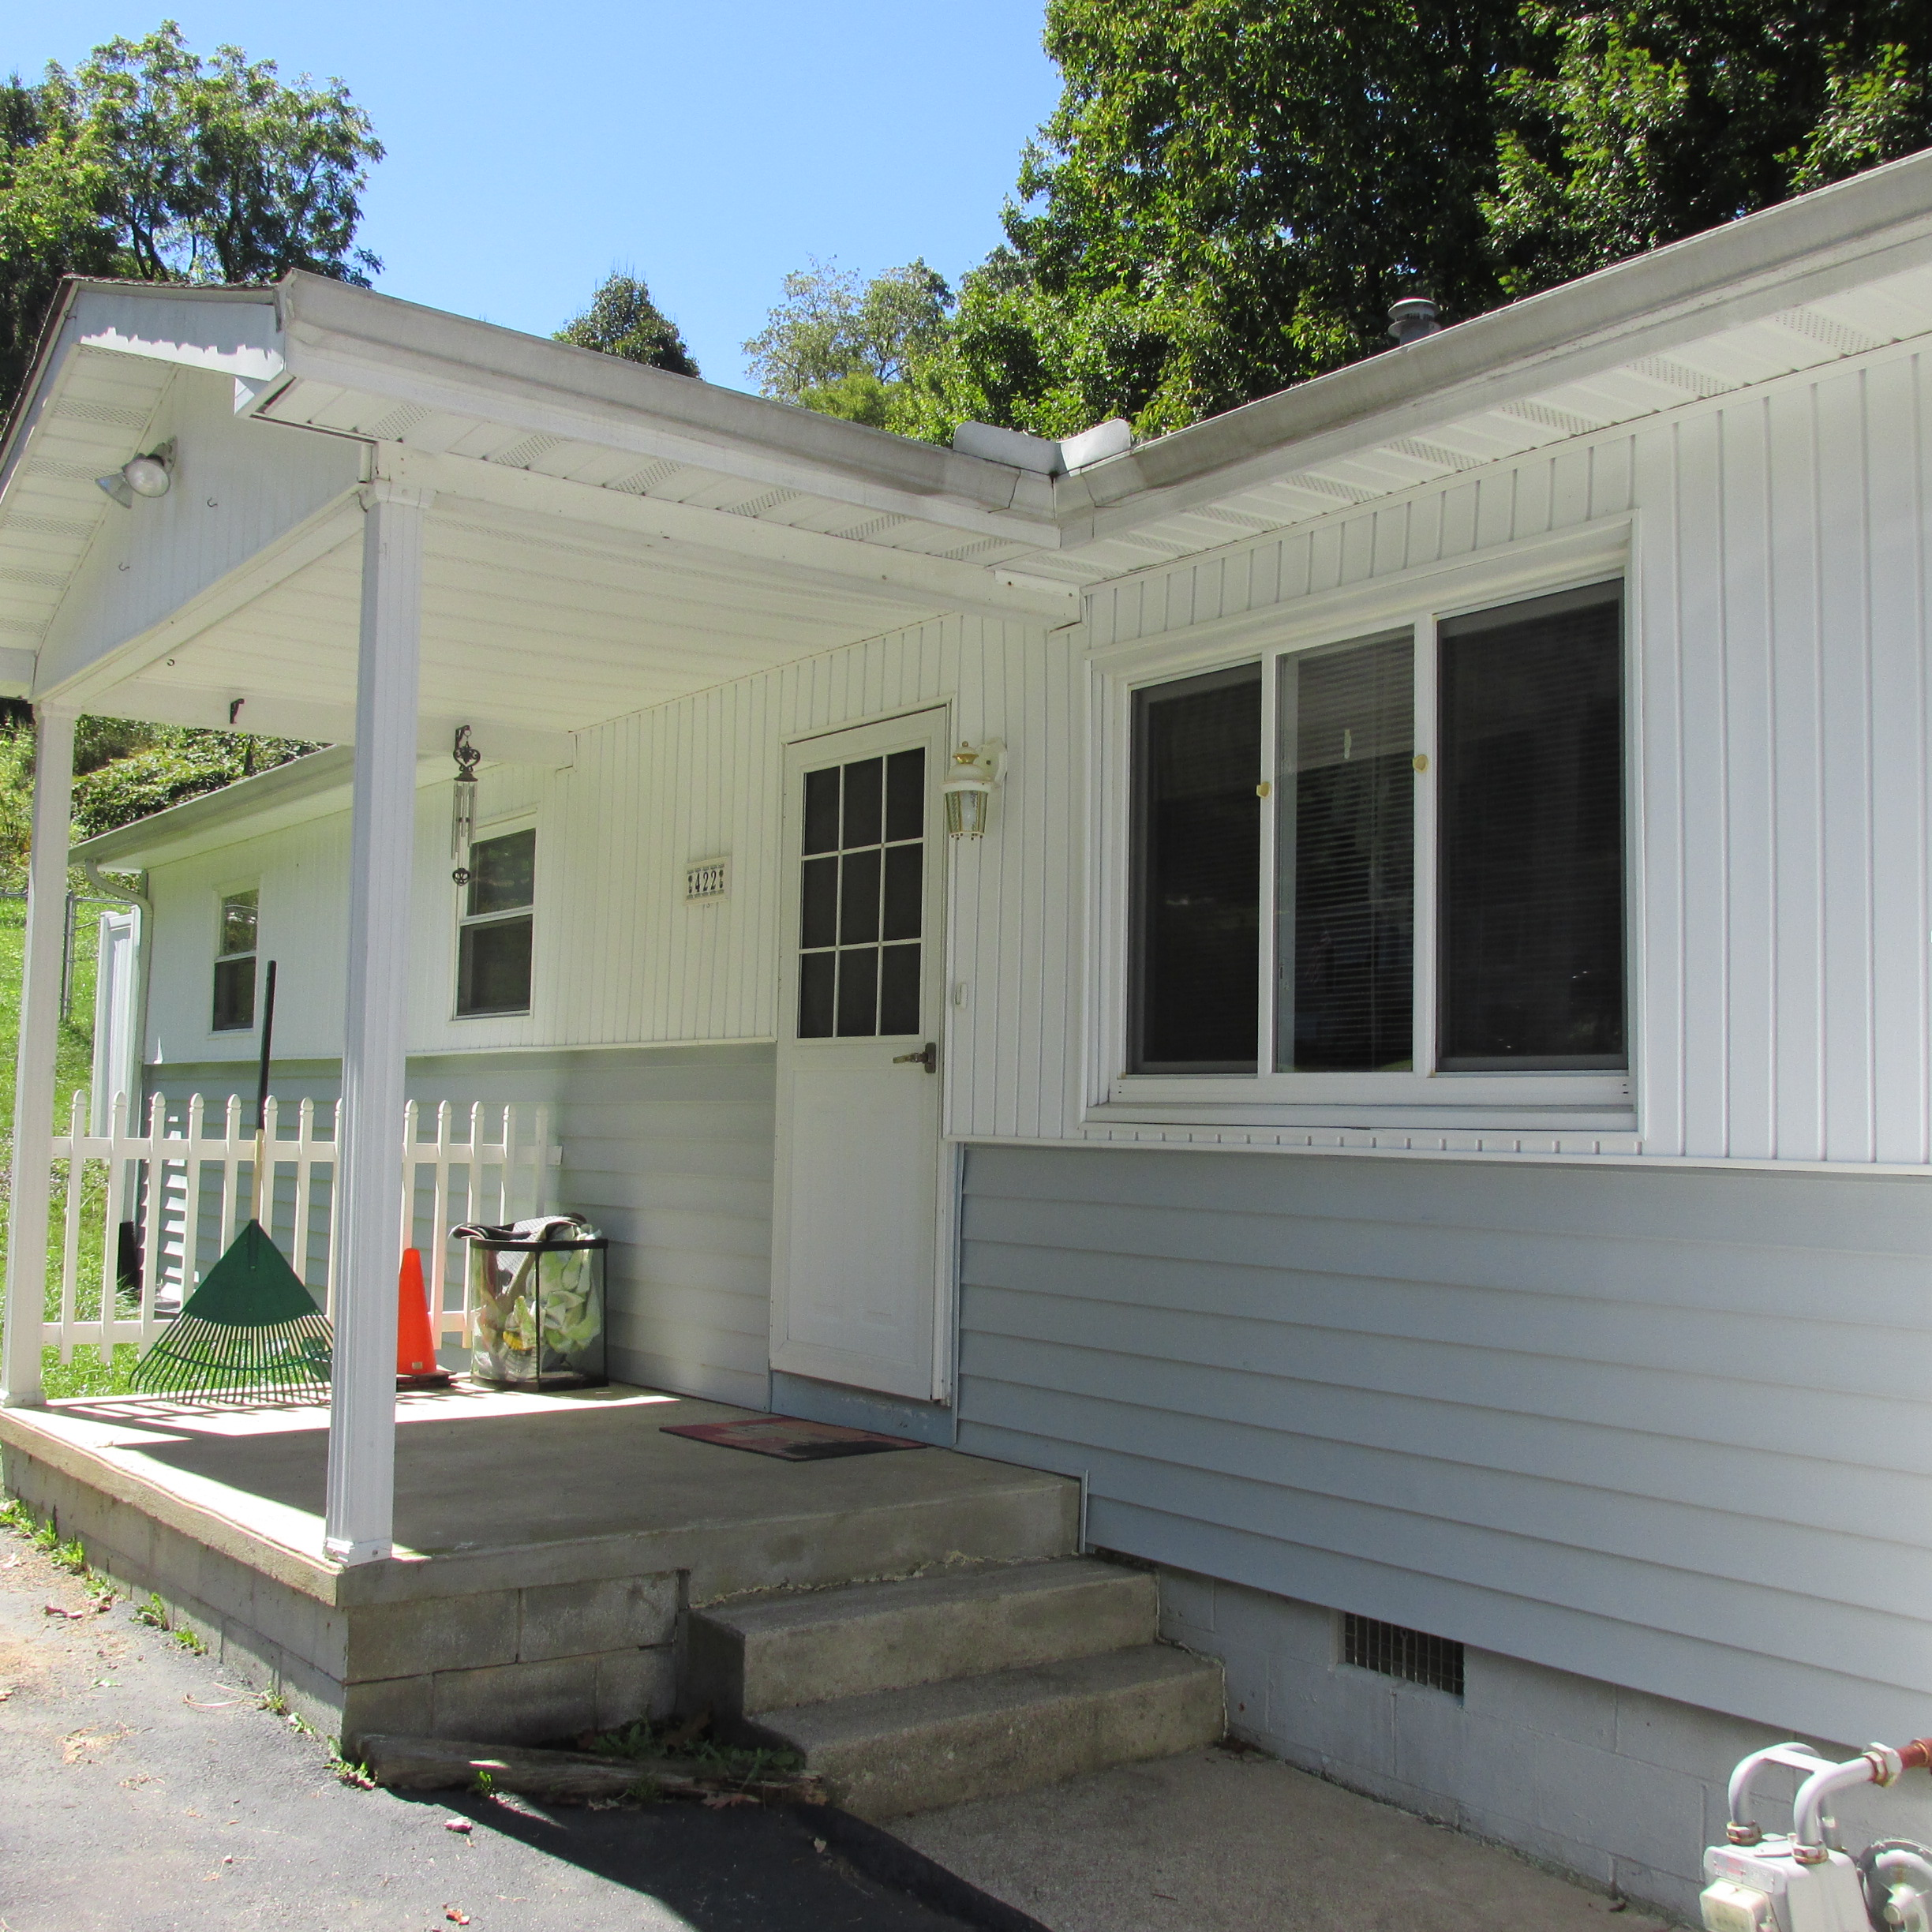 422 Lincoln Street, Crab Orchard, West Virginia 25827